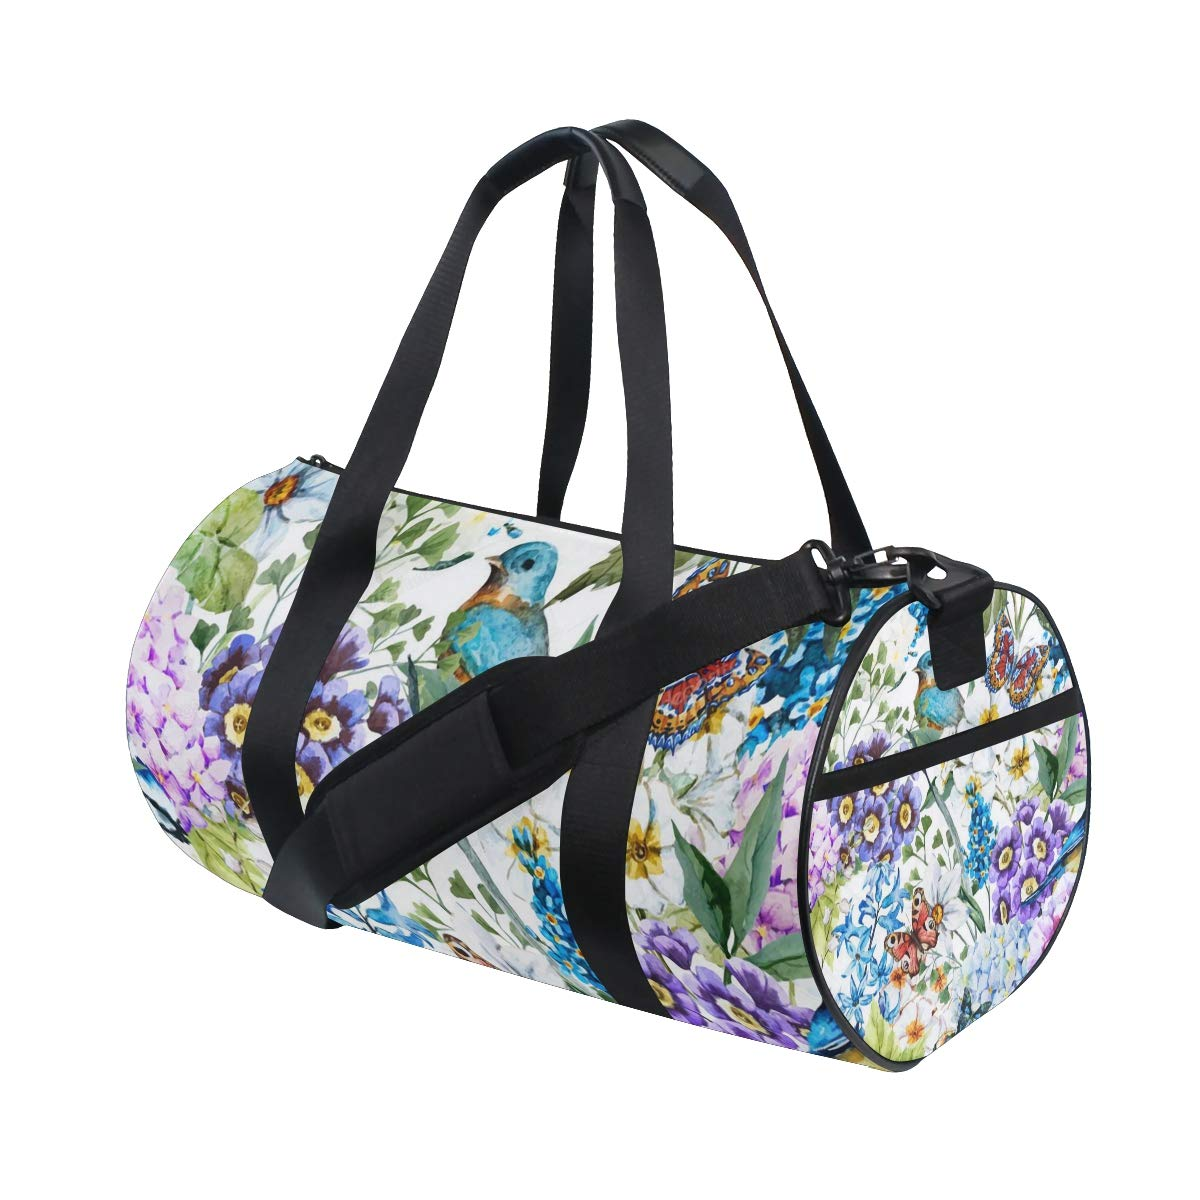 OuLian Women Gym Bag Watercolor Floral Summer Mens Camp Duffel Bags Duffle Luggage Travel Bag